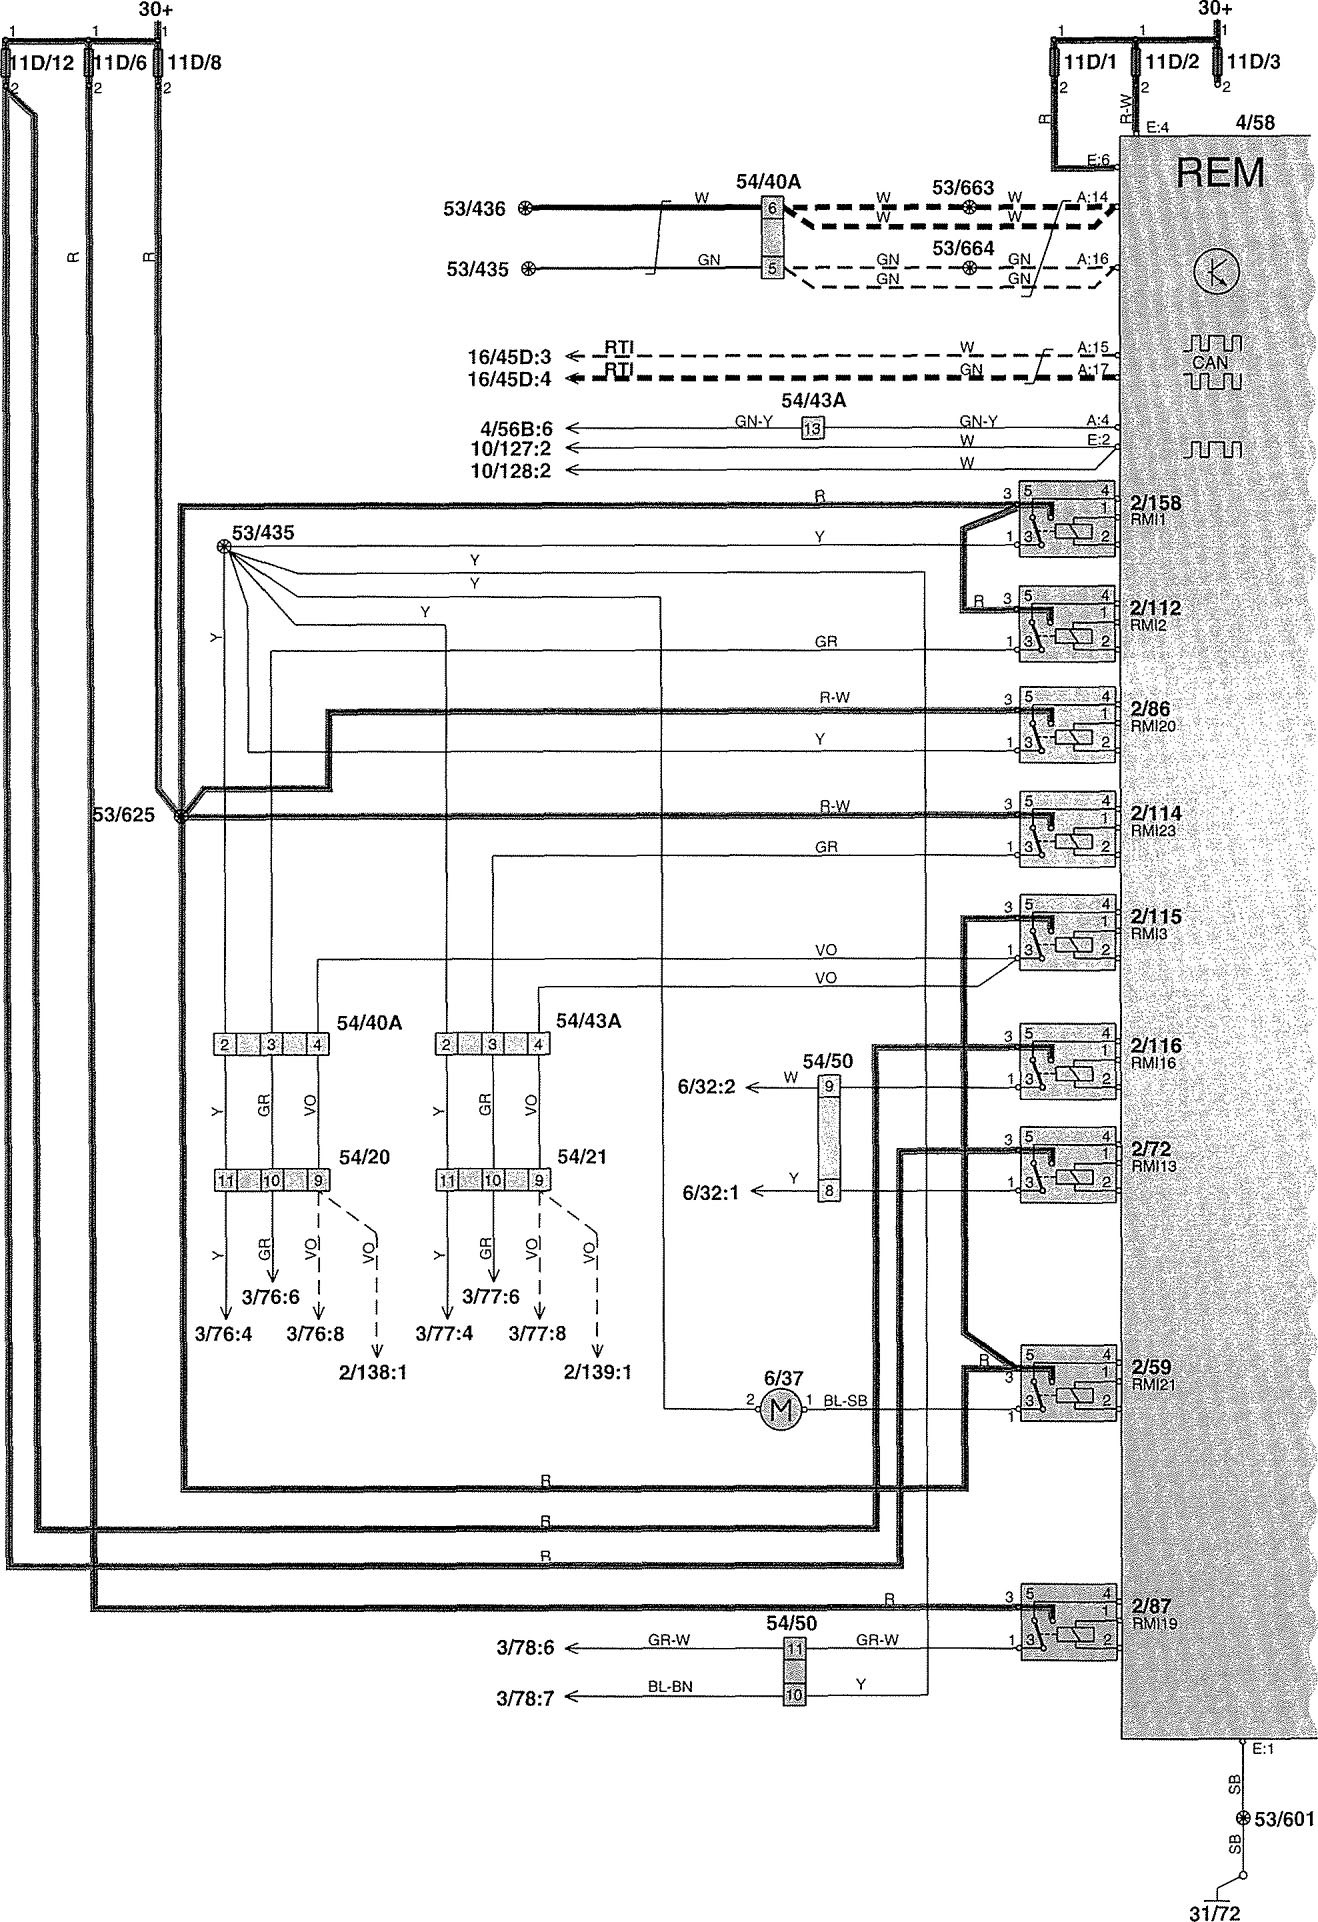 DIAGRAM] 2001 Xc70 Wiring Diagram FULL Version HD Quality Wiring Diagram -  DIAGRAMTHEPLAN.BANDBANNAMARIA.IT | Volvo Xc70 Trailer Wiring Diagram |  | Diagram Database - bandbannamaria.it